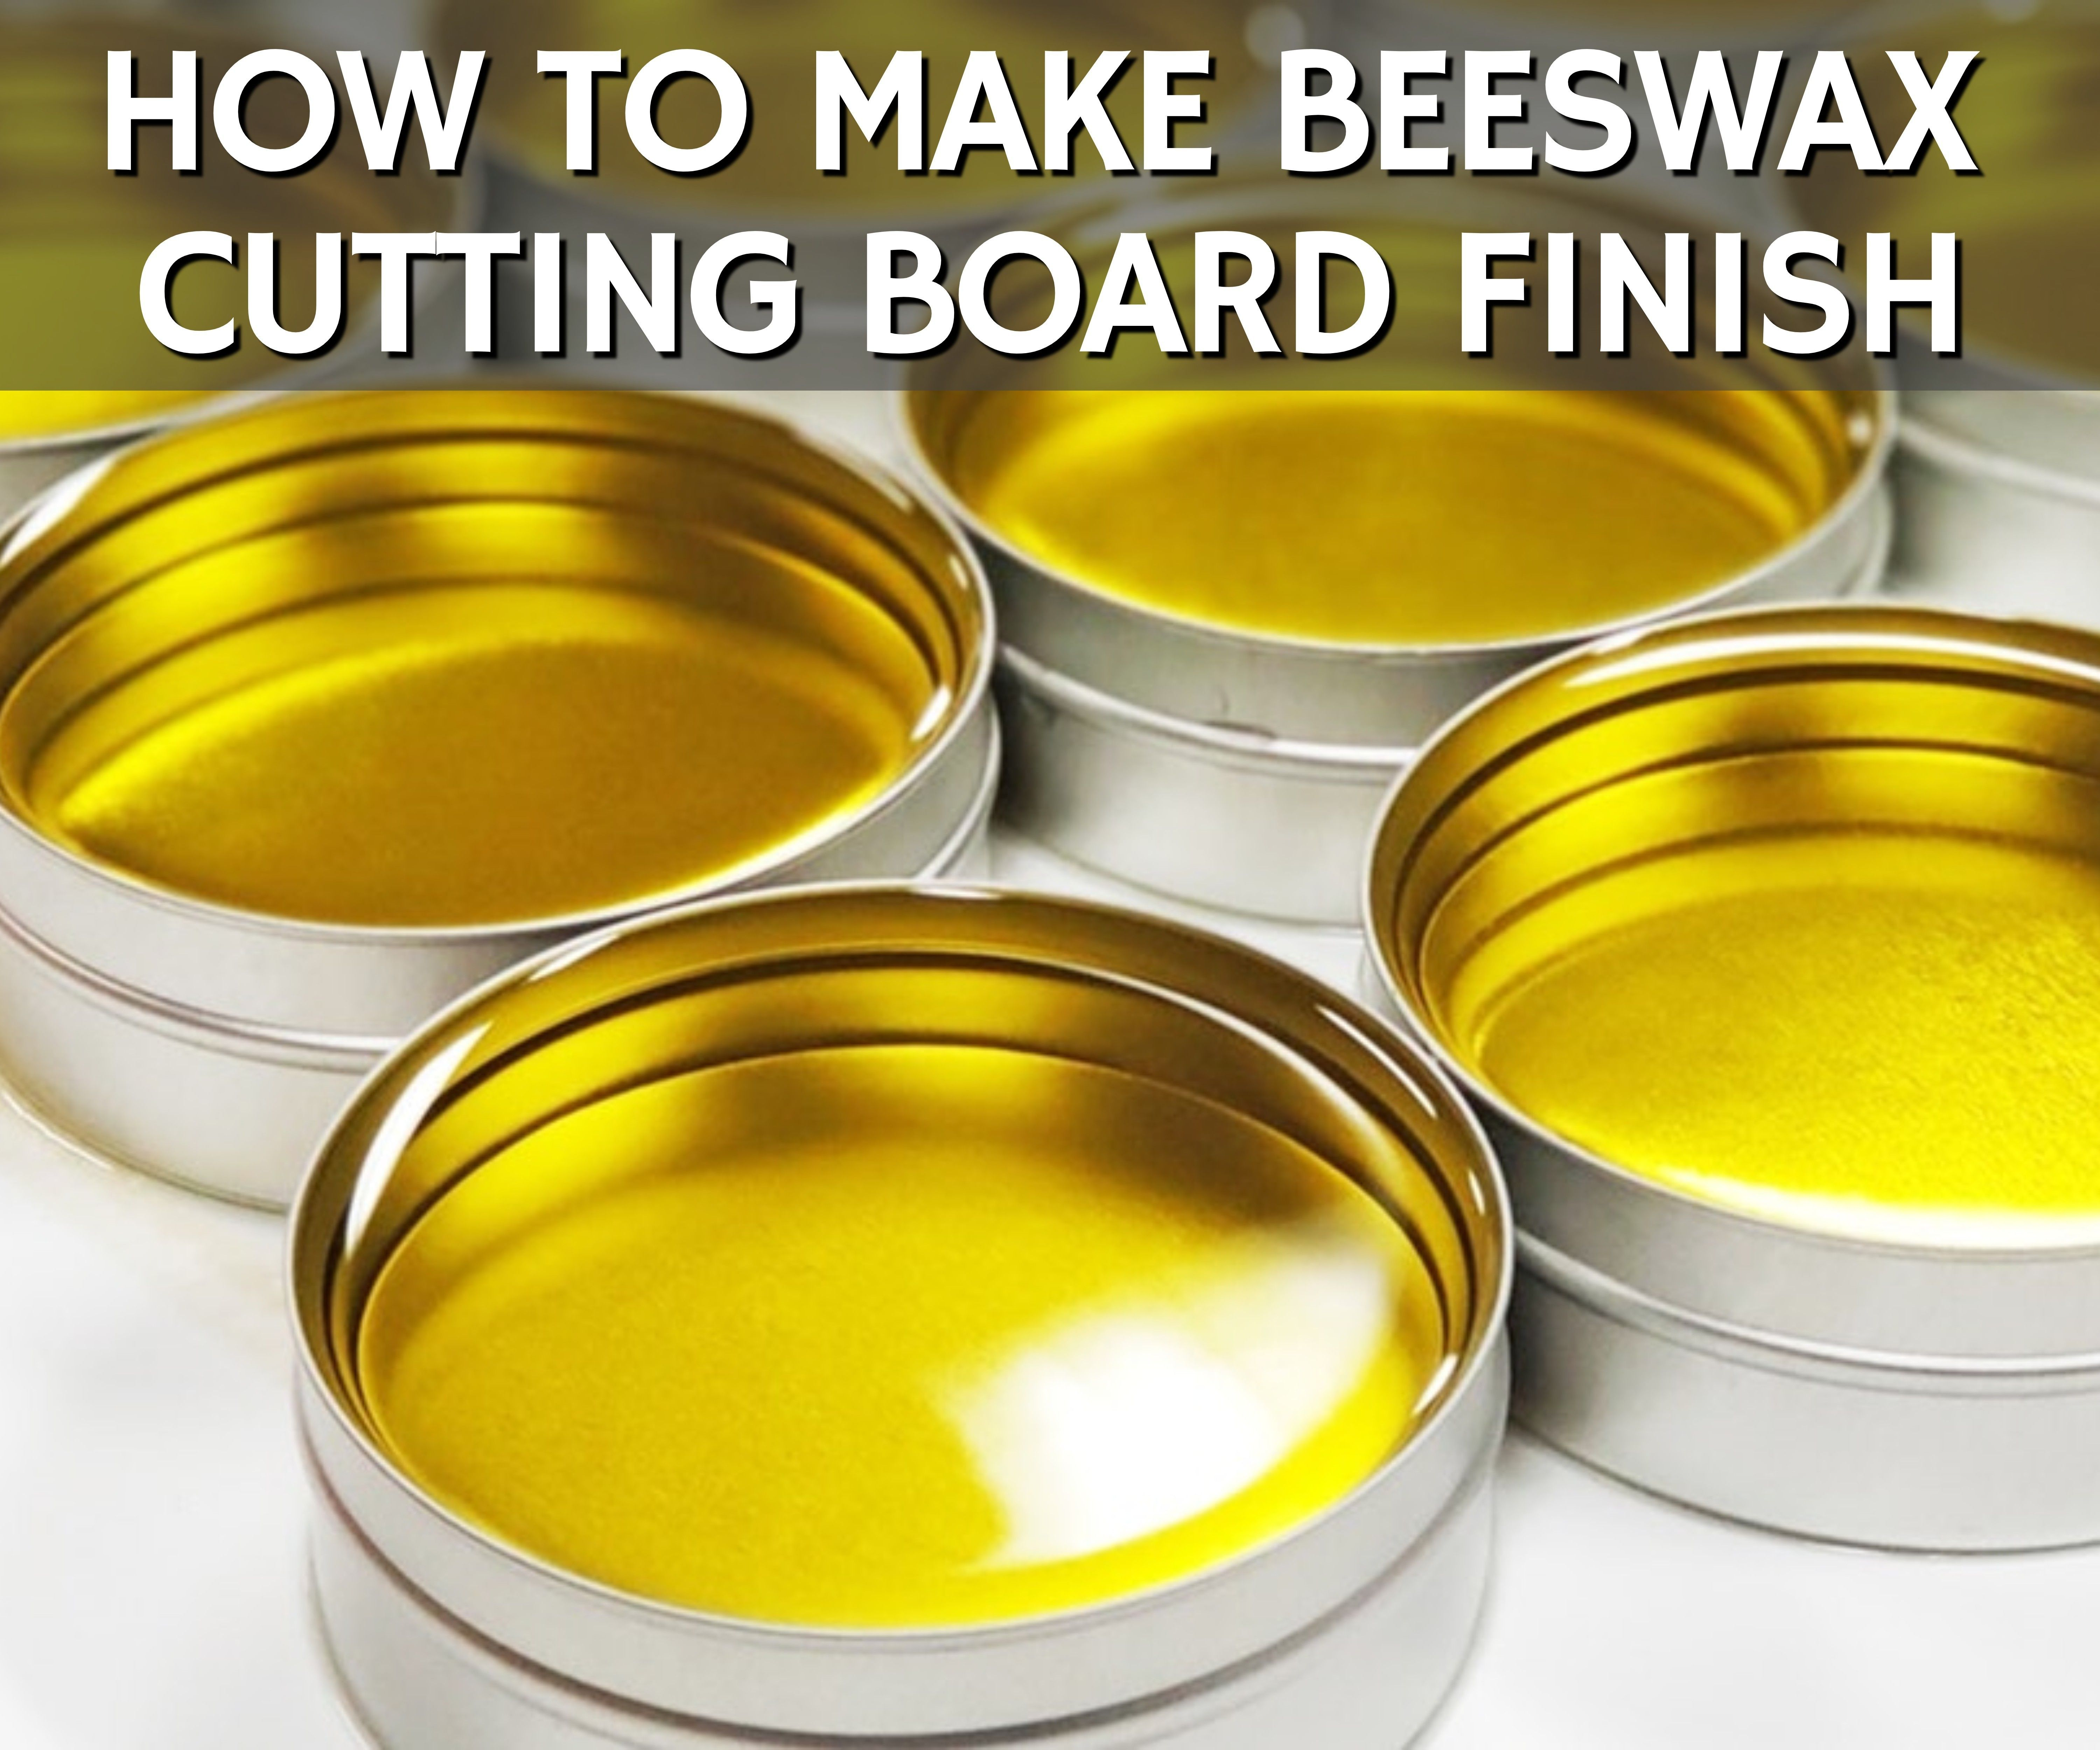 How to Make Beeswax Finish for Cutting Boards